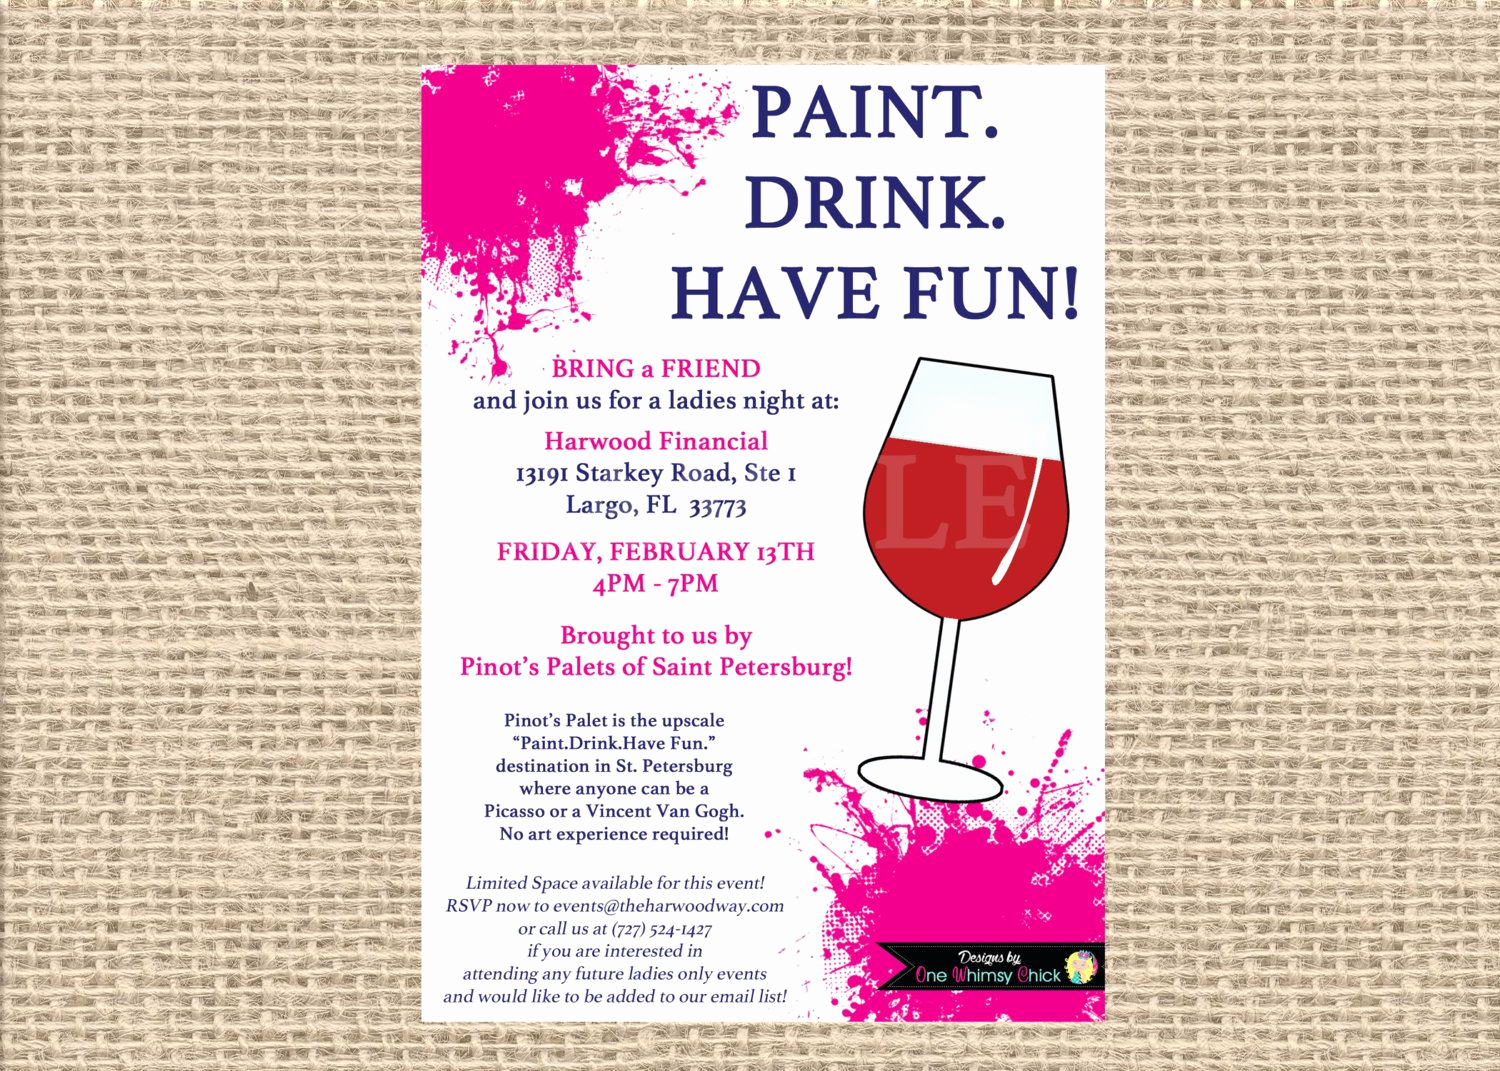 Painting Party Invitation Template Inspirational Painting Wine Party Invitation Bachelorette Invitations